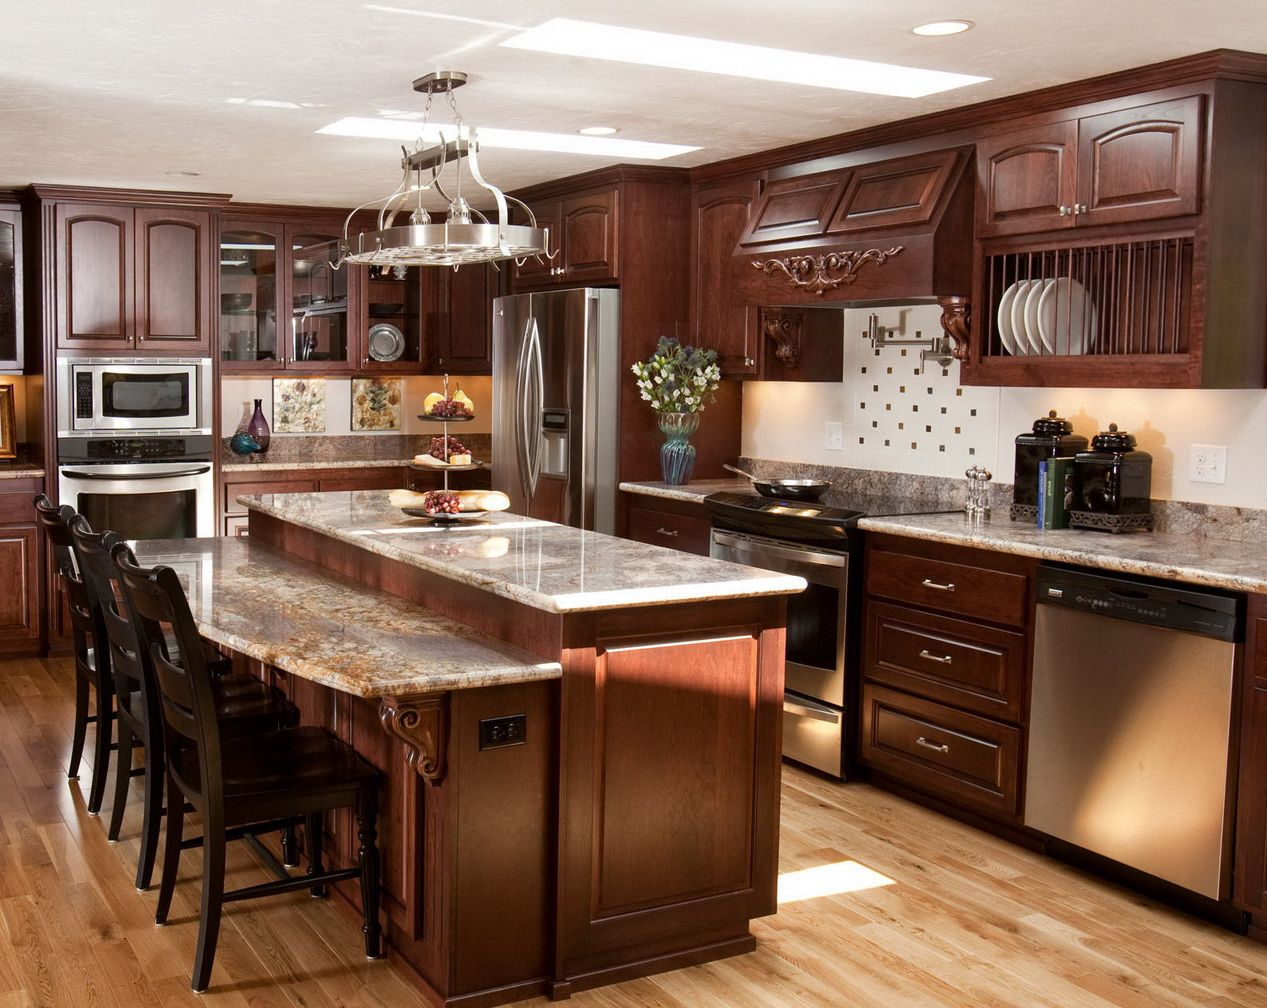 Wooden Italian Kitchen Decor Decorations Ideas